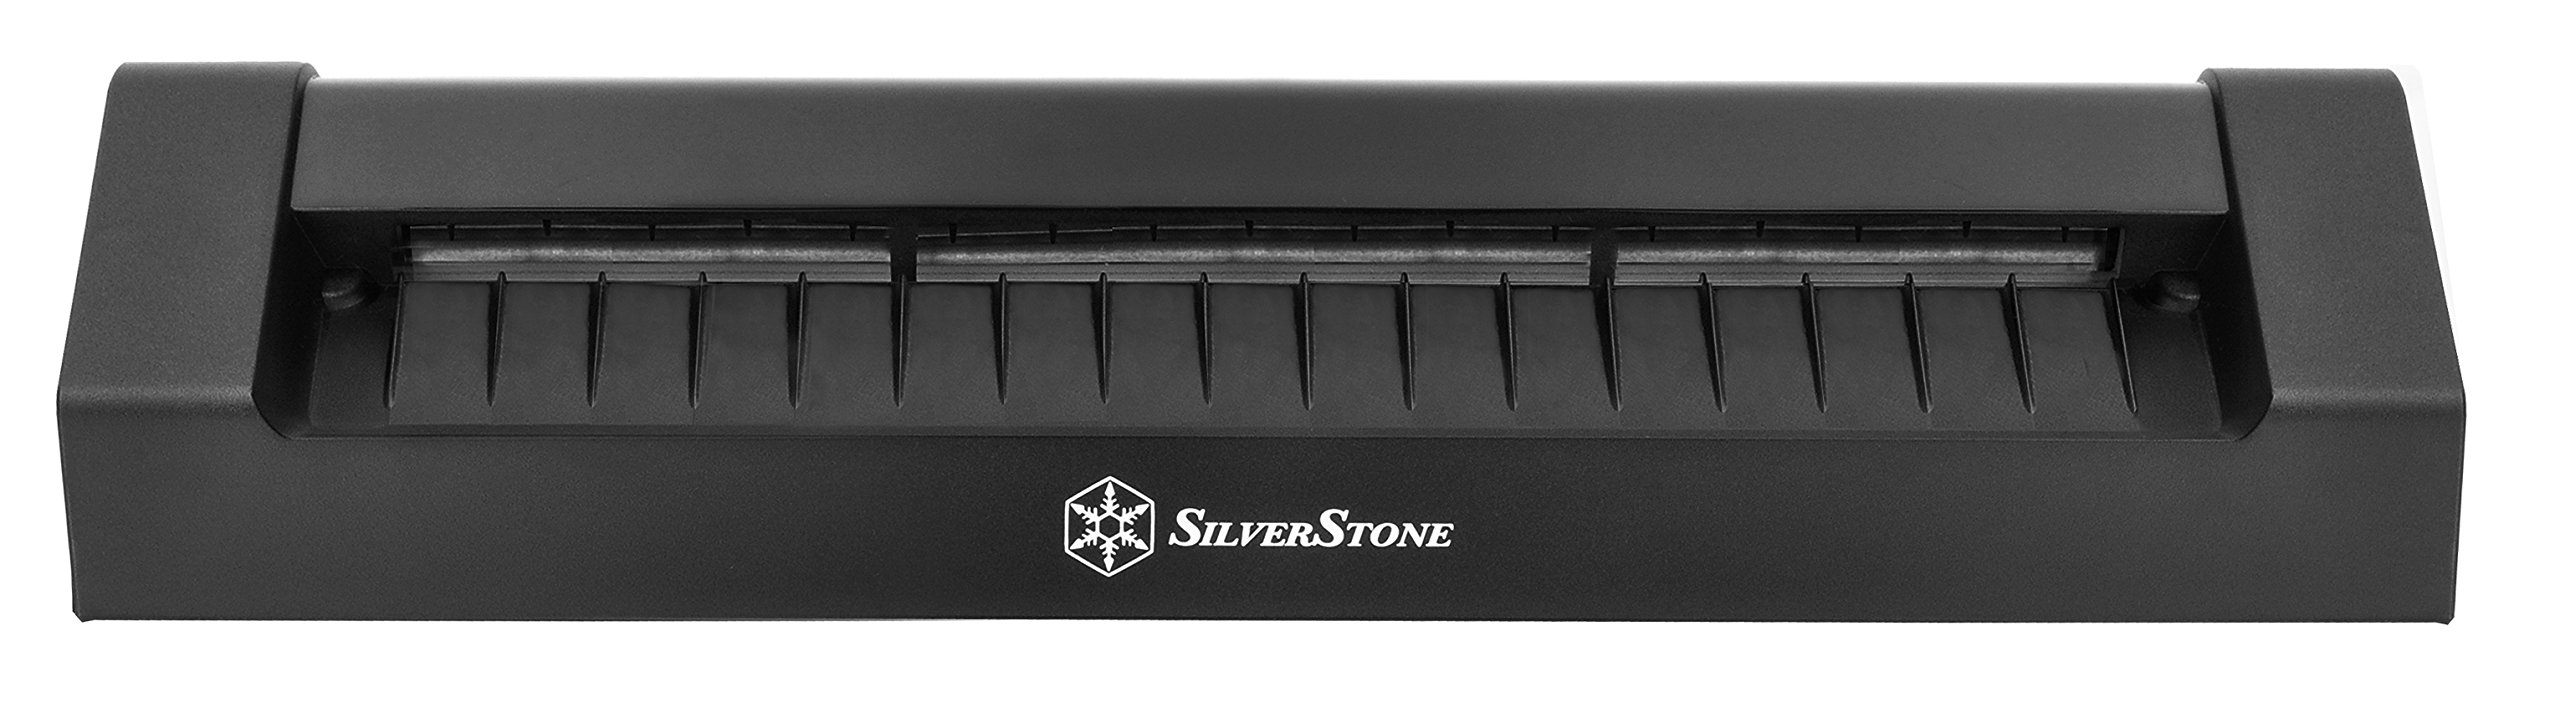 Silverstone Tek Multifunctional Laptop Cooler with Crossflow Fan, Networking Capabilities and 3x SuperSpeed USB 3.0 Ports (NB05B) by SilverStone Technology (Image #6)